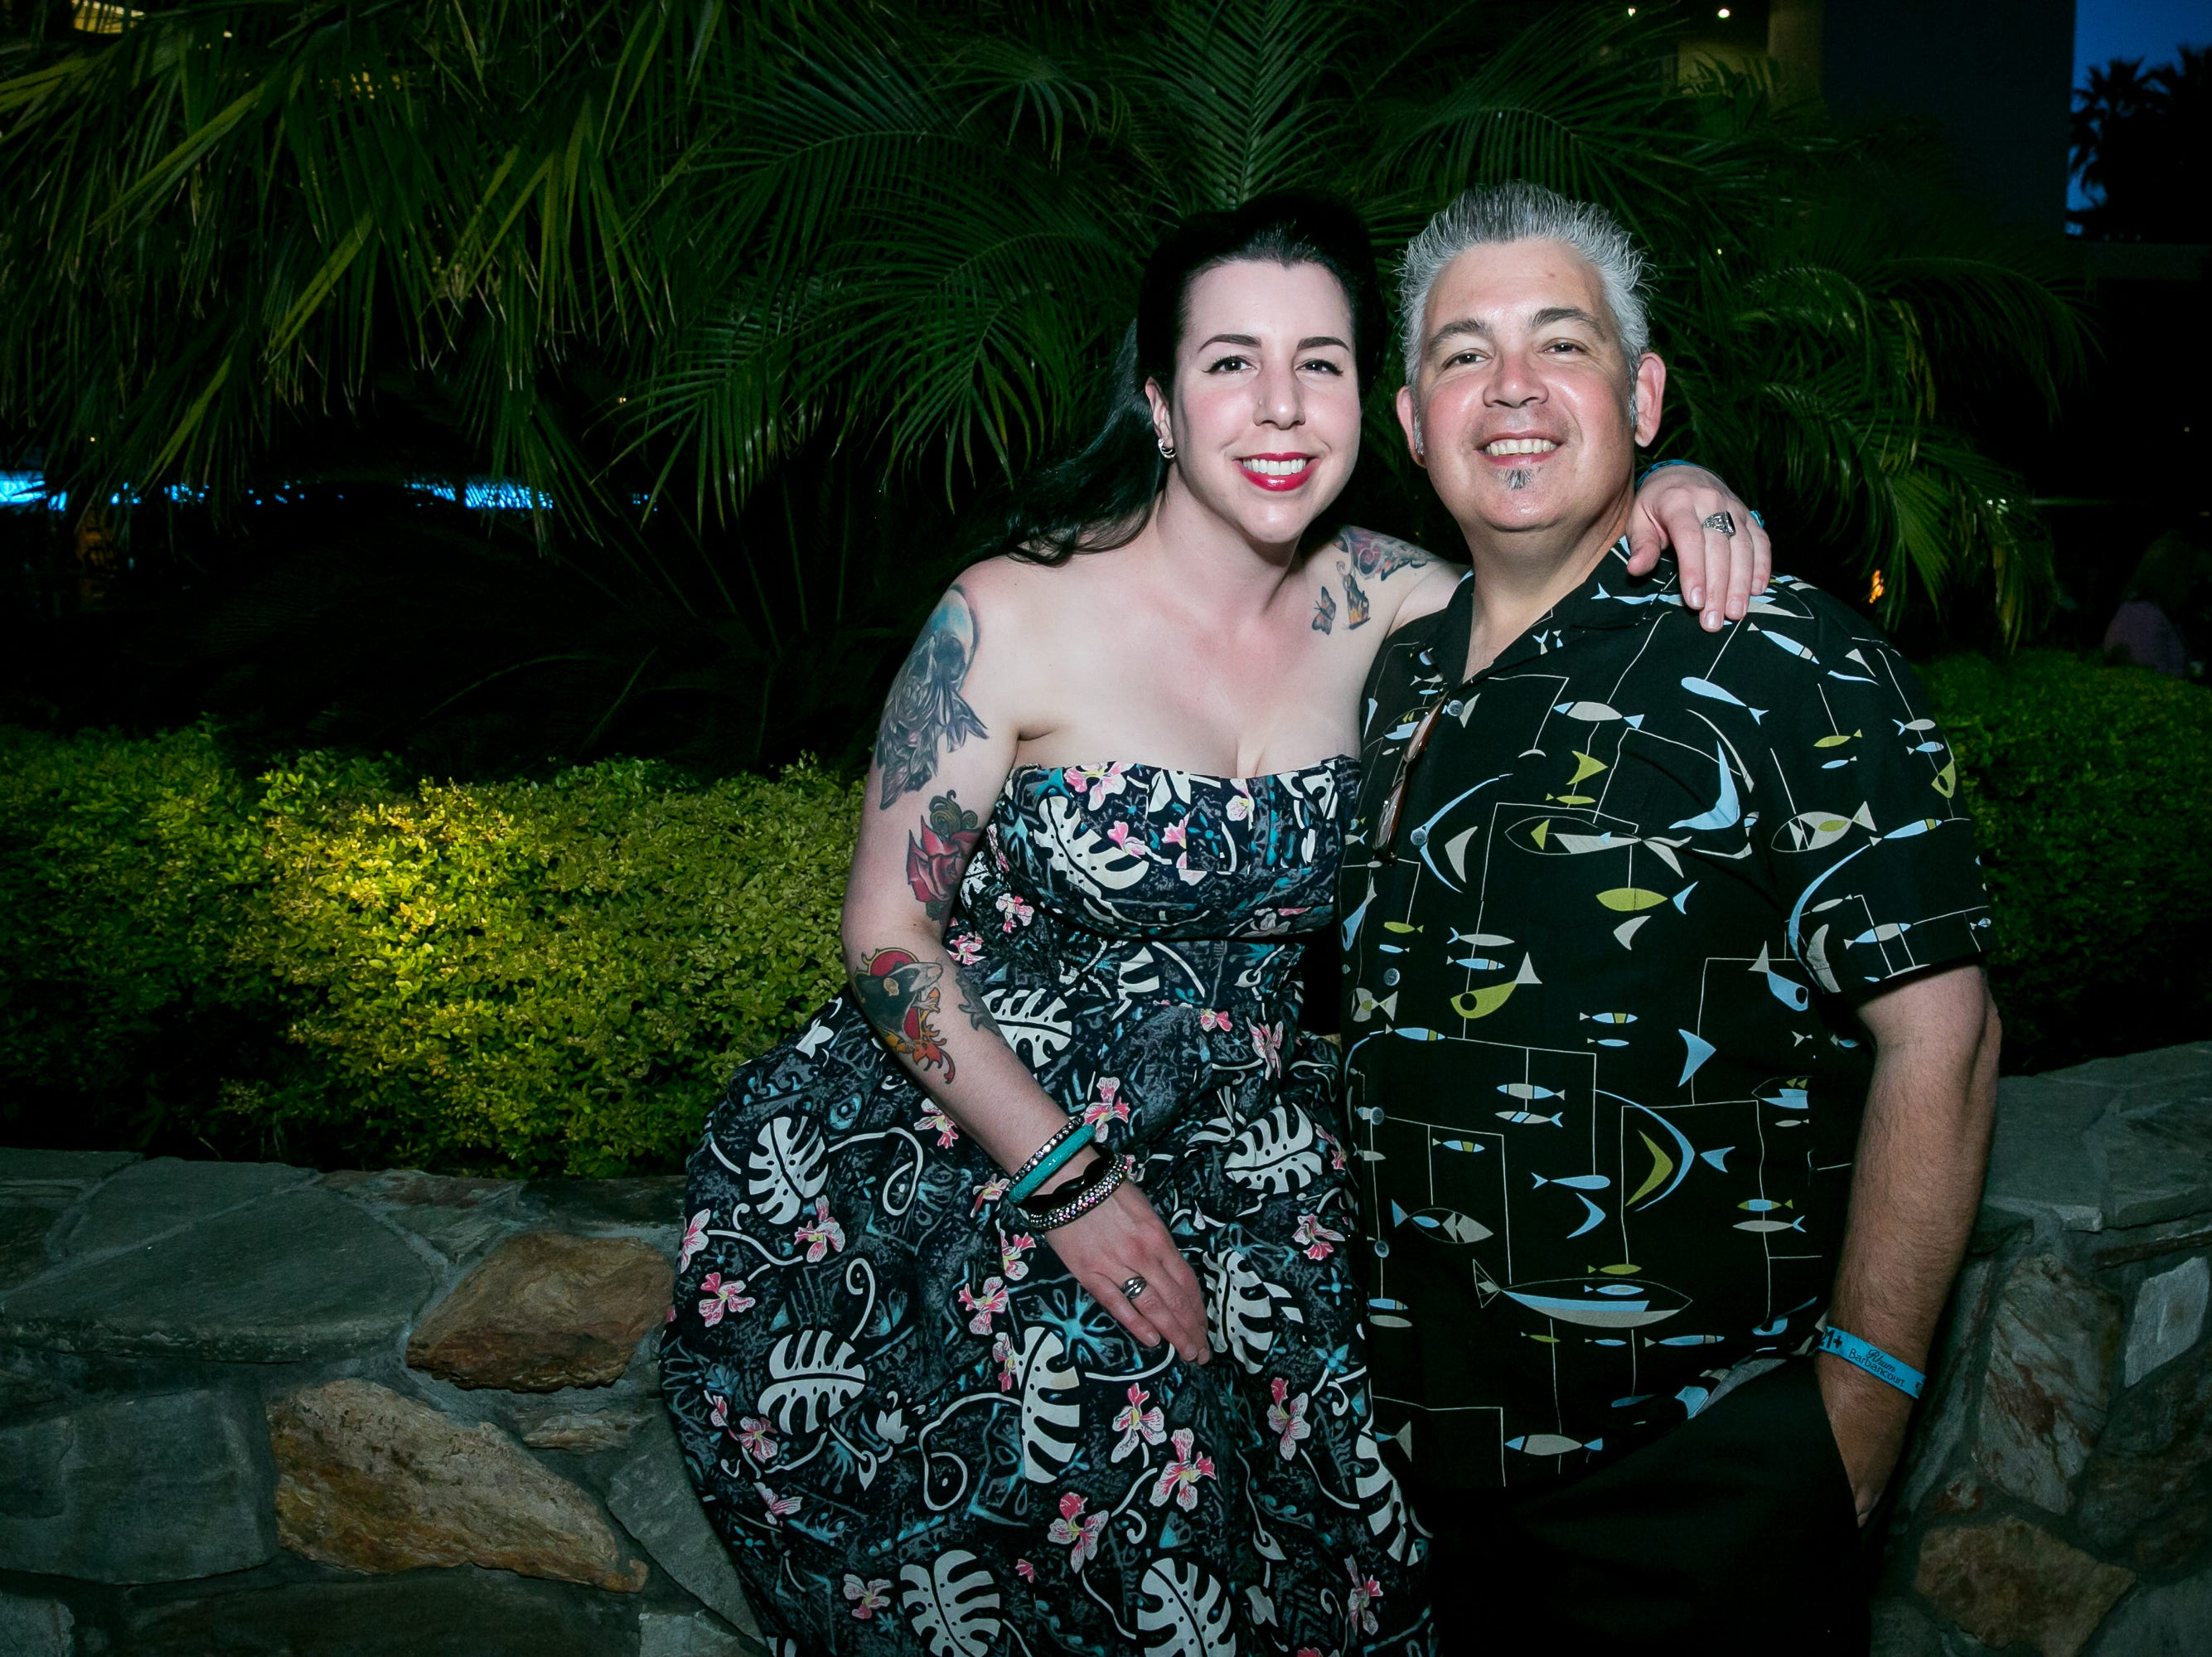 This duo looked great during Arizona Tiki Oasis at Hotel Valley Ho in Scottsdale on April 12, 2019.